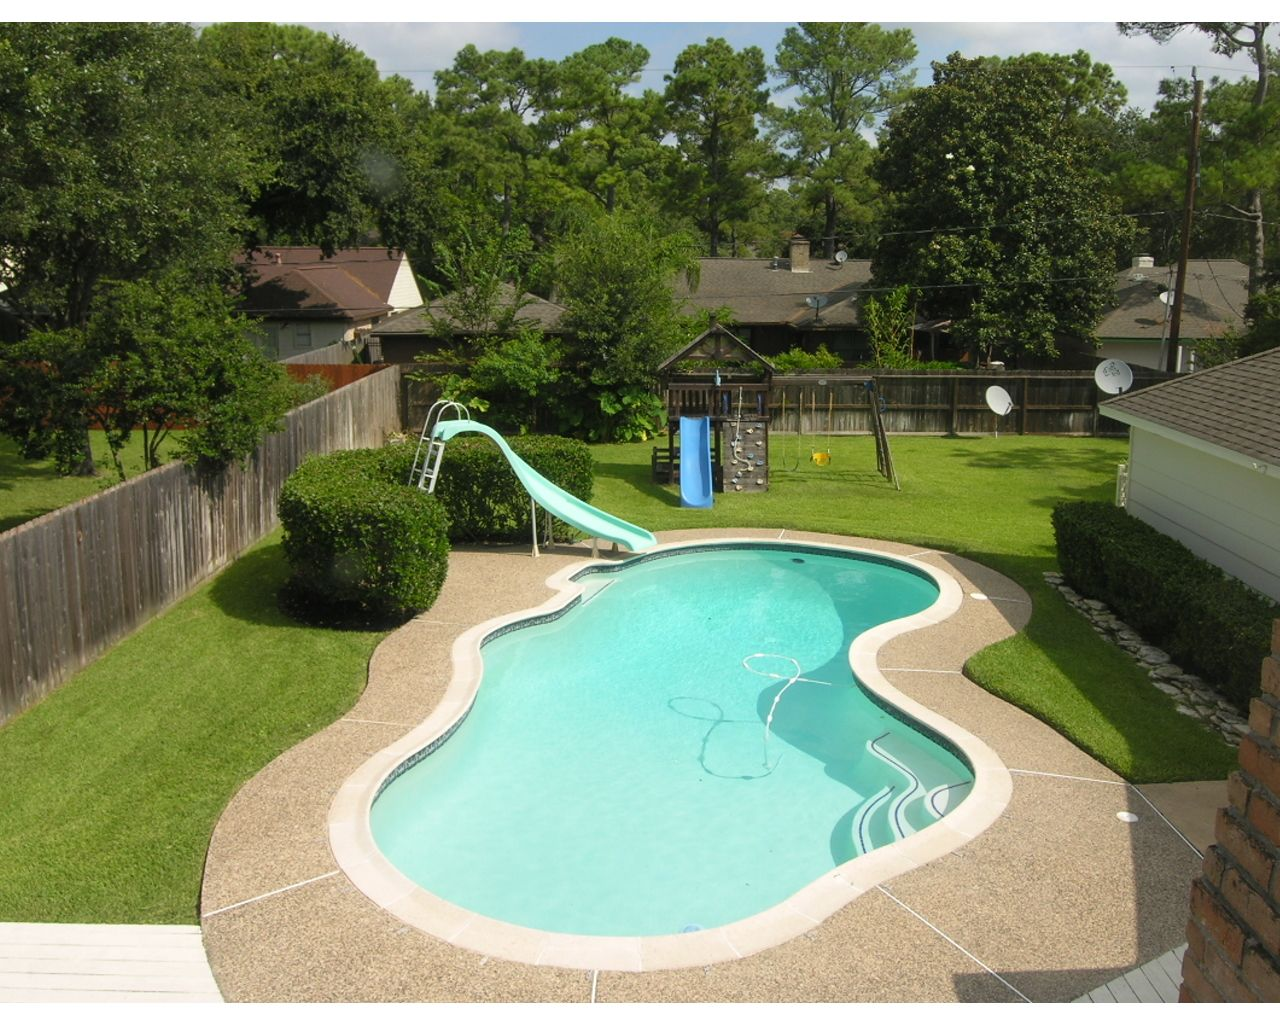 Backyard pools great view of large backyard pool but Great pool design ideas